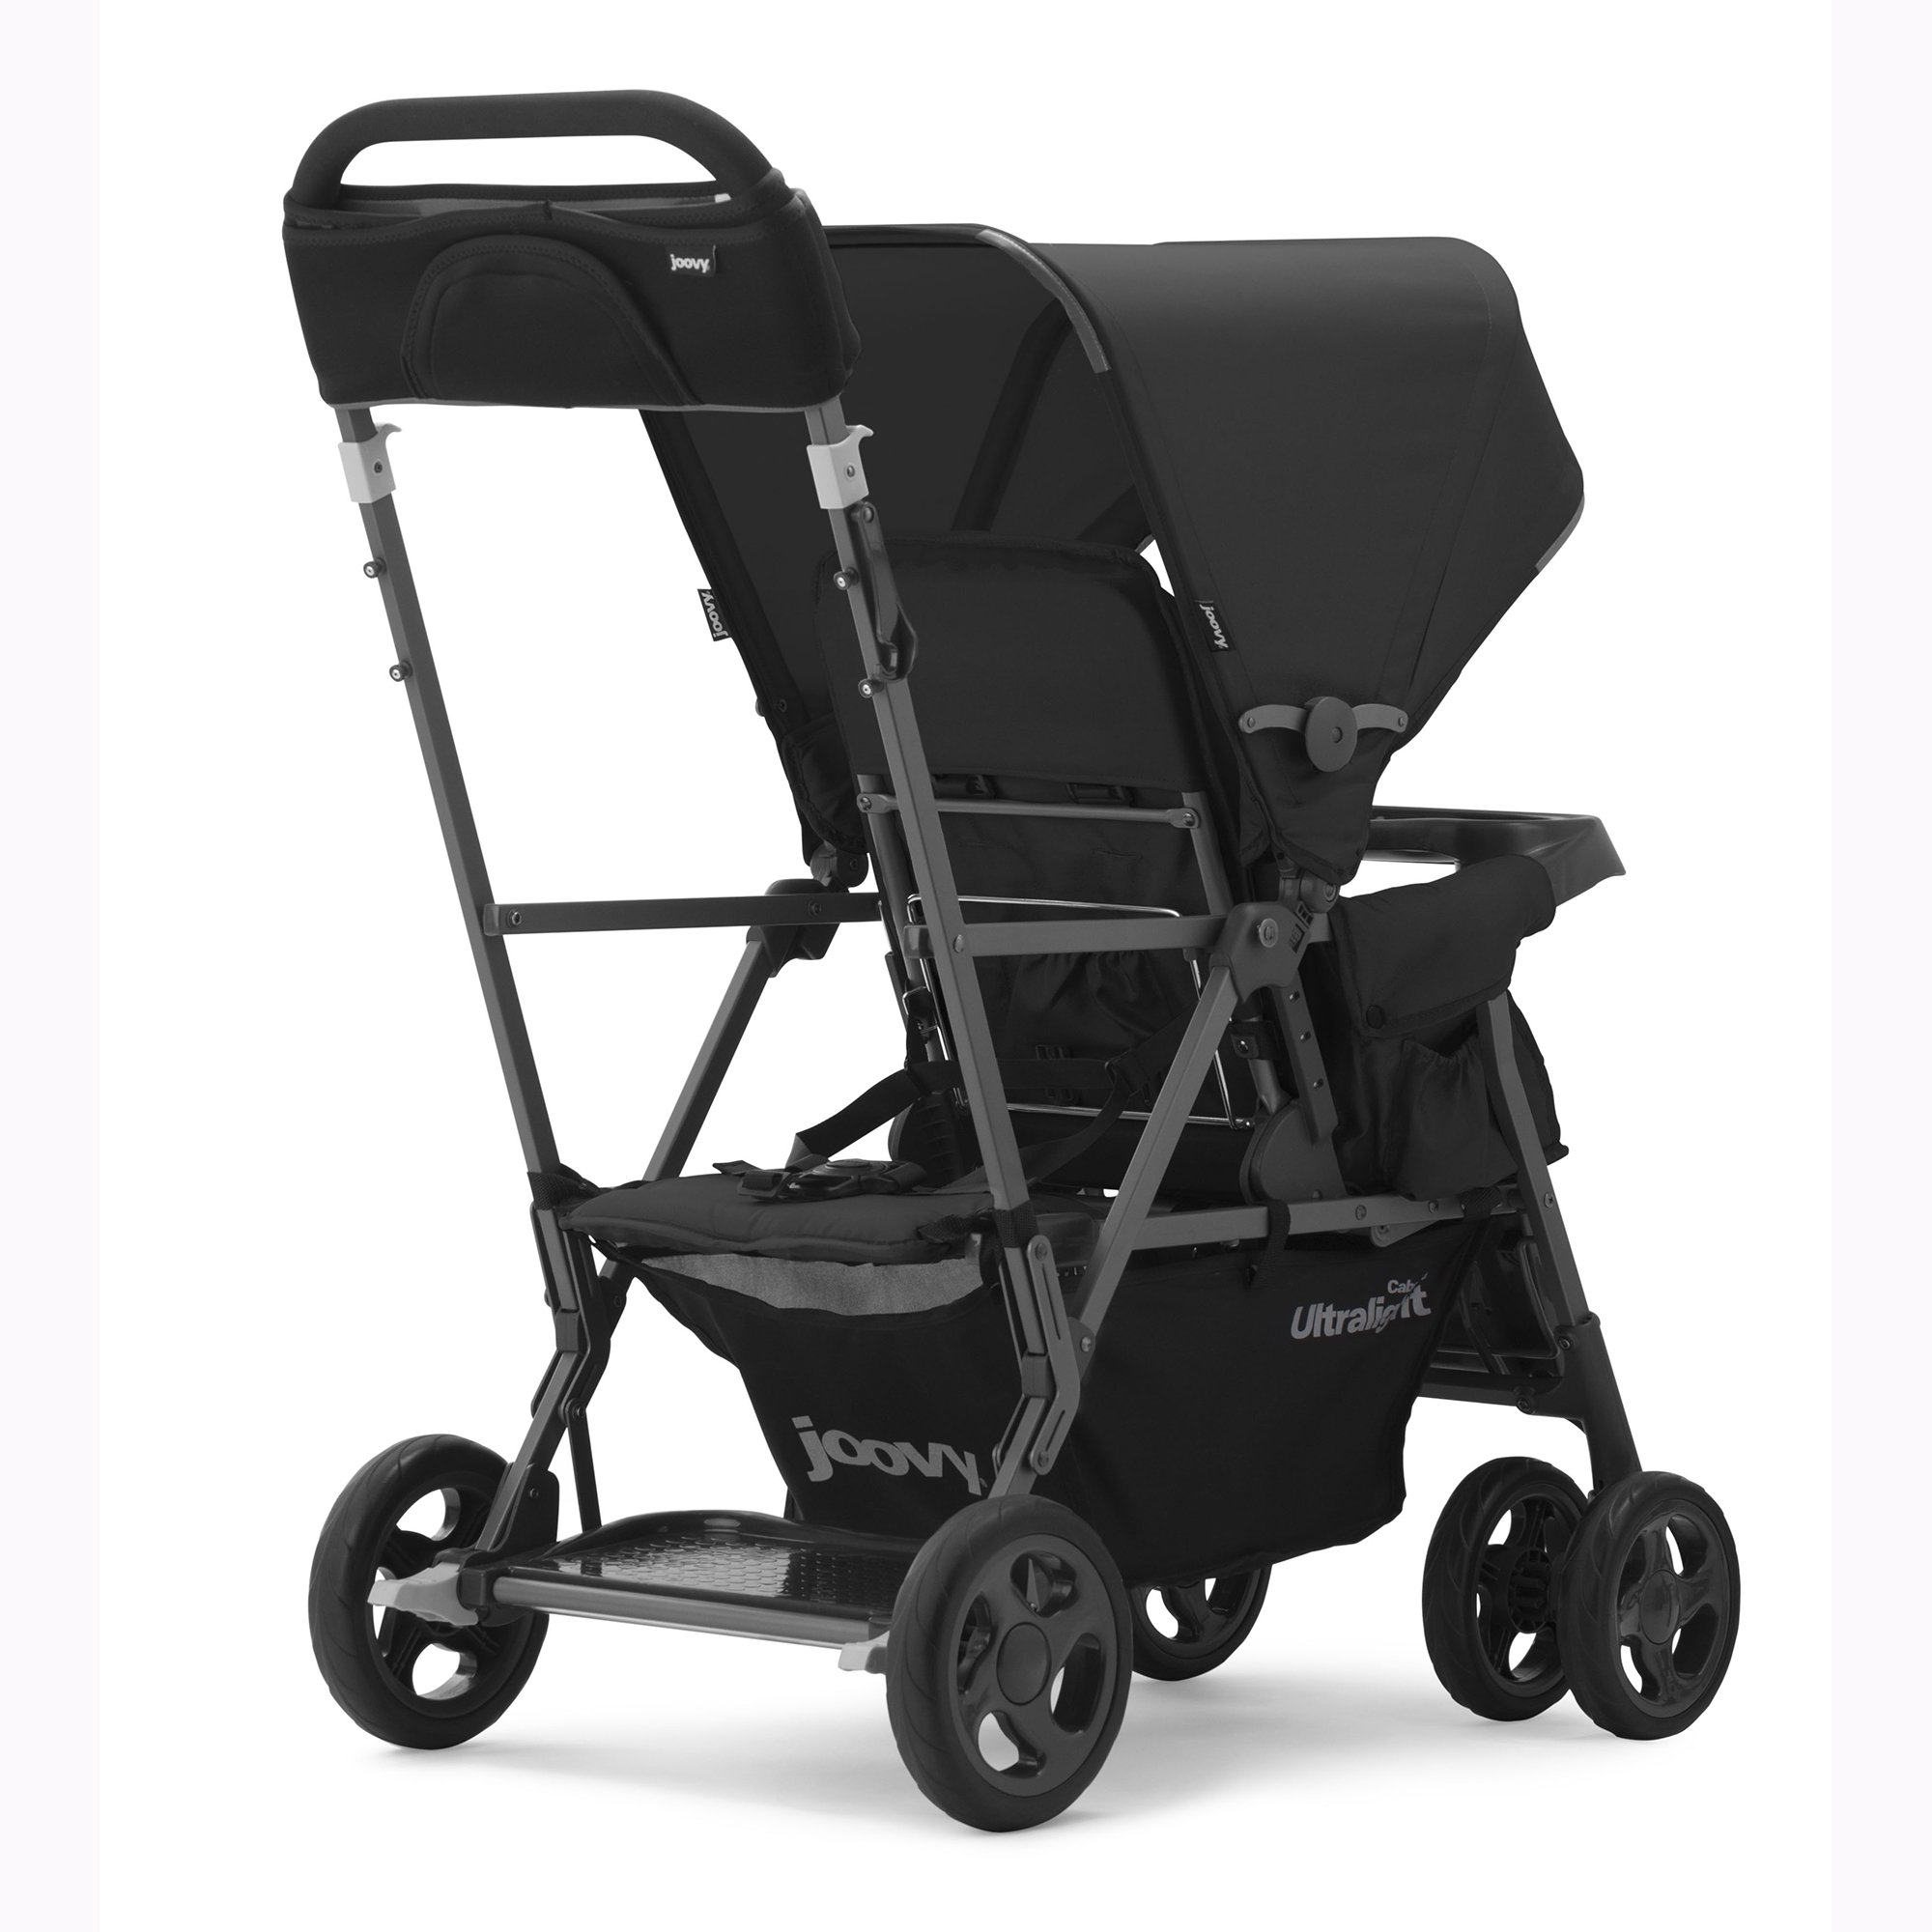 JOOVY Caboose Too Ultralight Graphite Stand-On Tandem Stroller, Black by Joovy (Image #3)